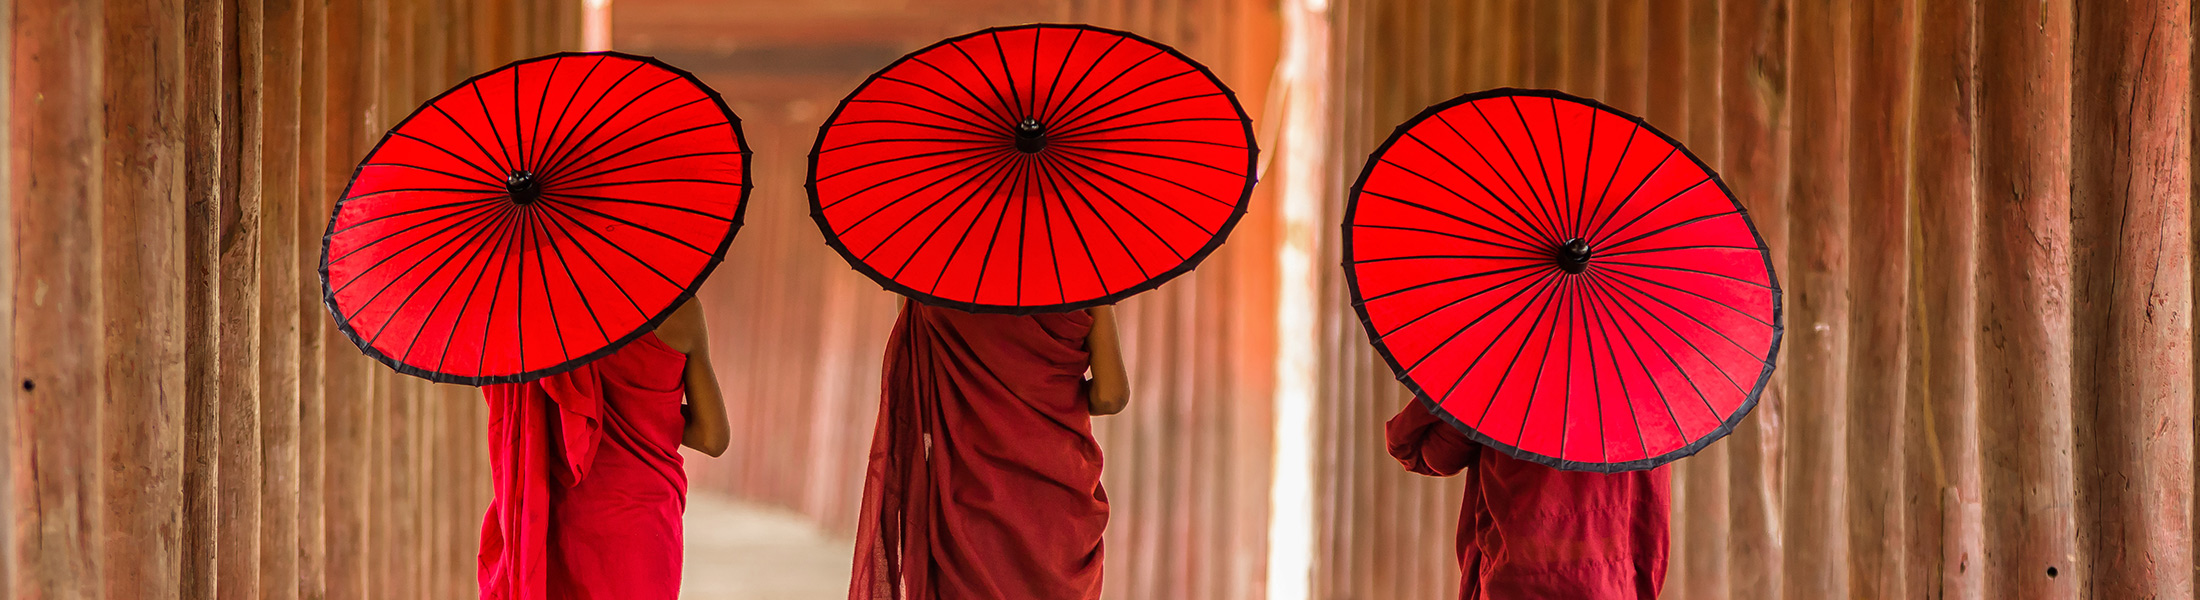 Buddhists with umbrellas walking in a pagoda in Myanmar